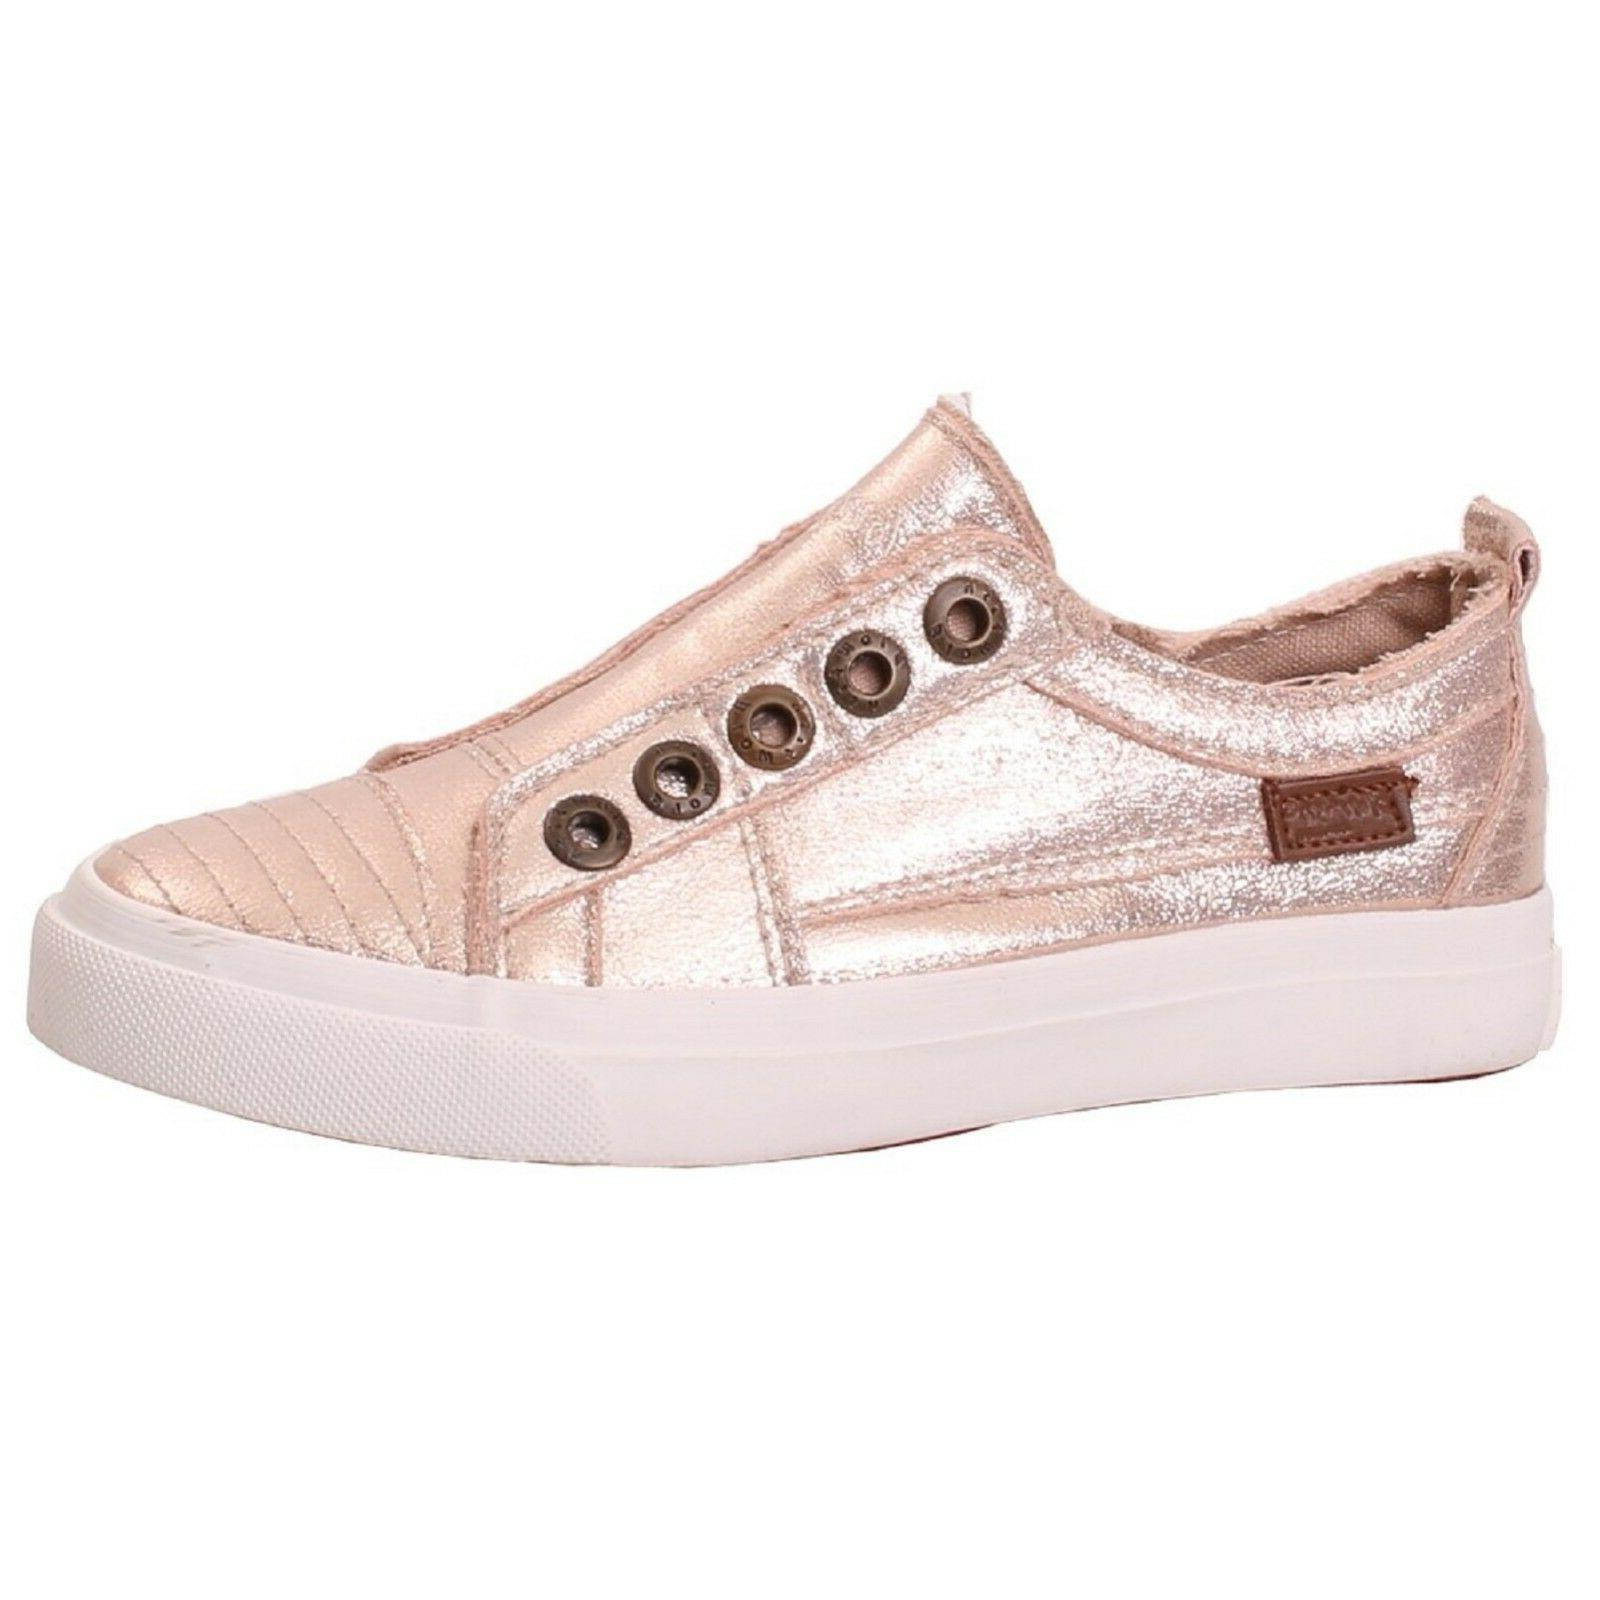 Women's Blowfish PLAY Rose Gold Lace-up Sneaker Shoes